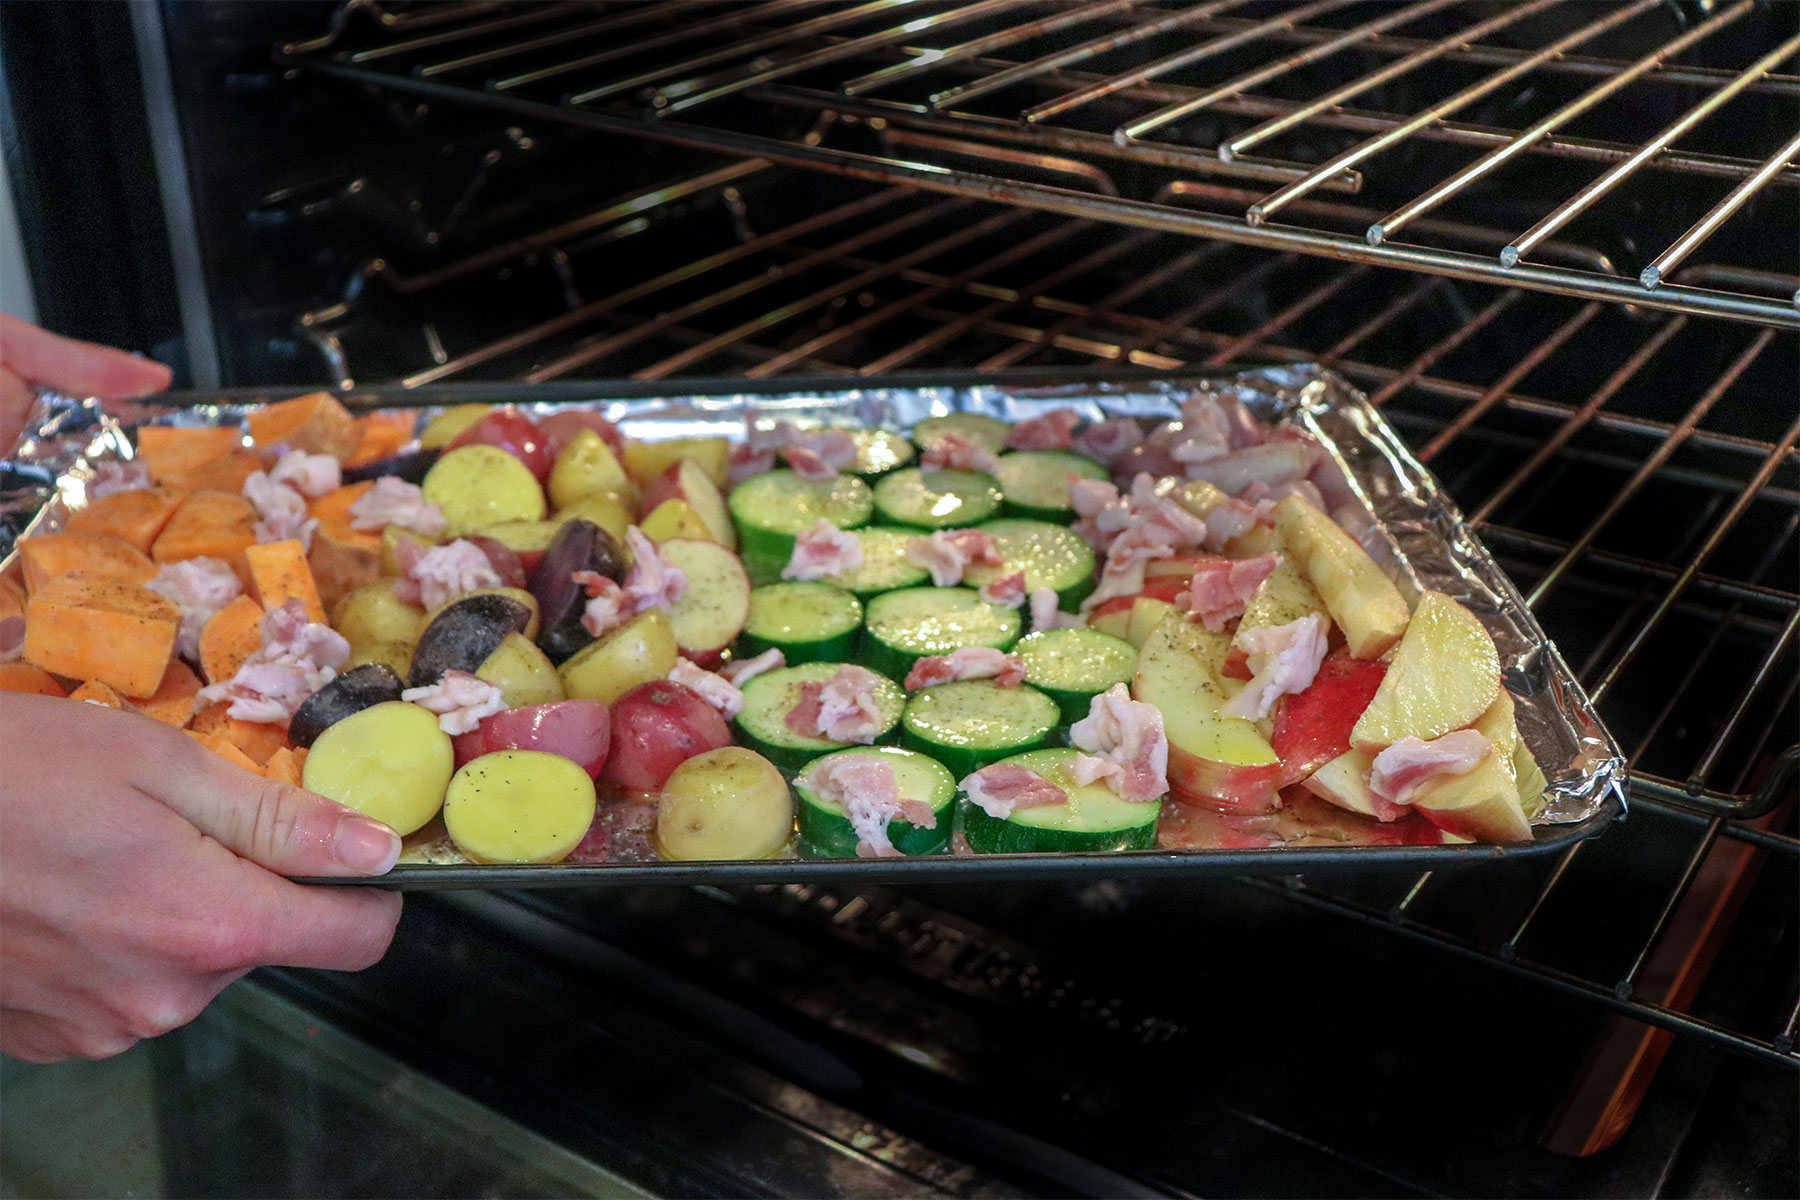 sheet pan with veggies and bacon put into oven